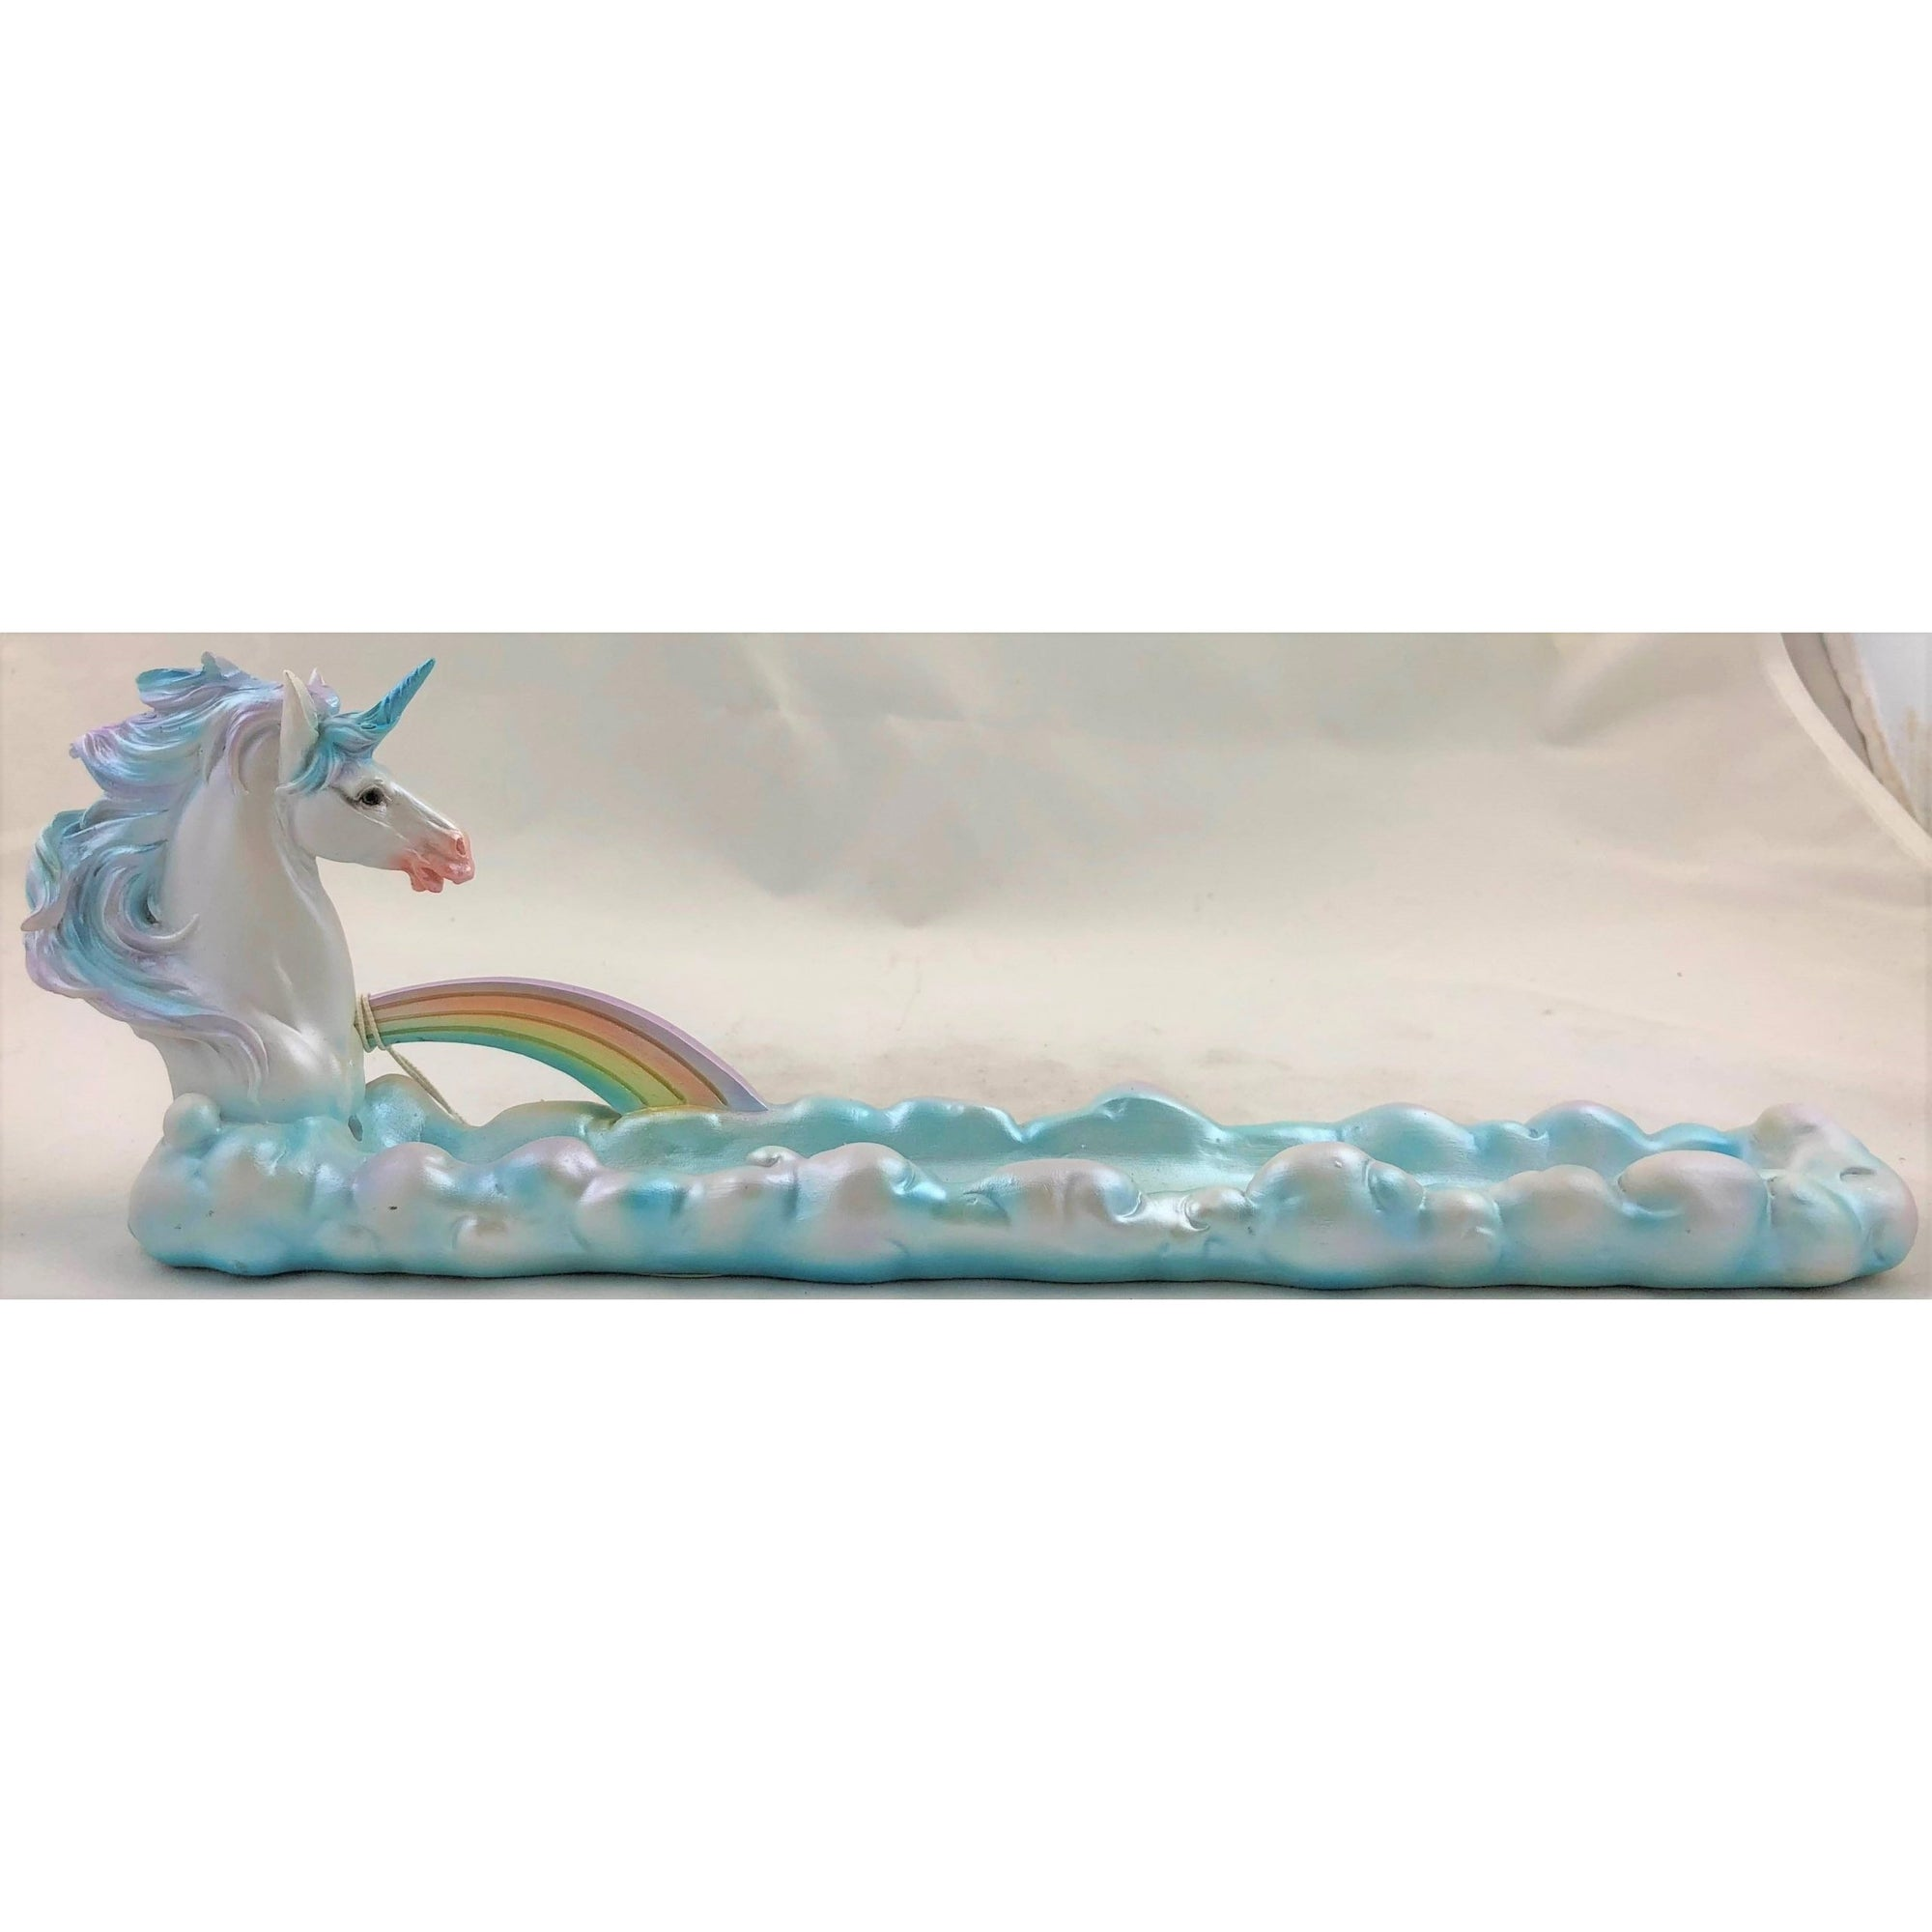 Unicorn Incense Holder - Rivendell Shop NZ